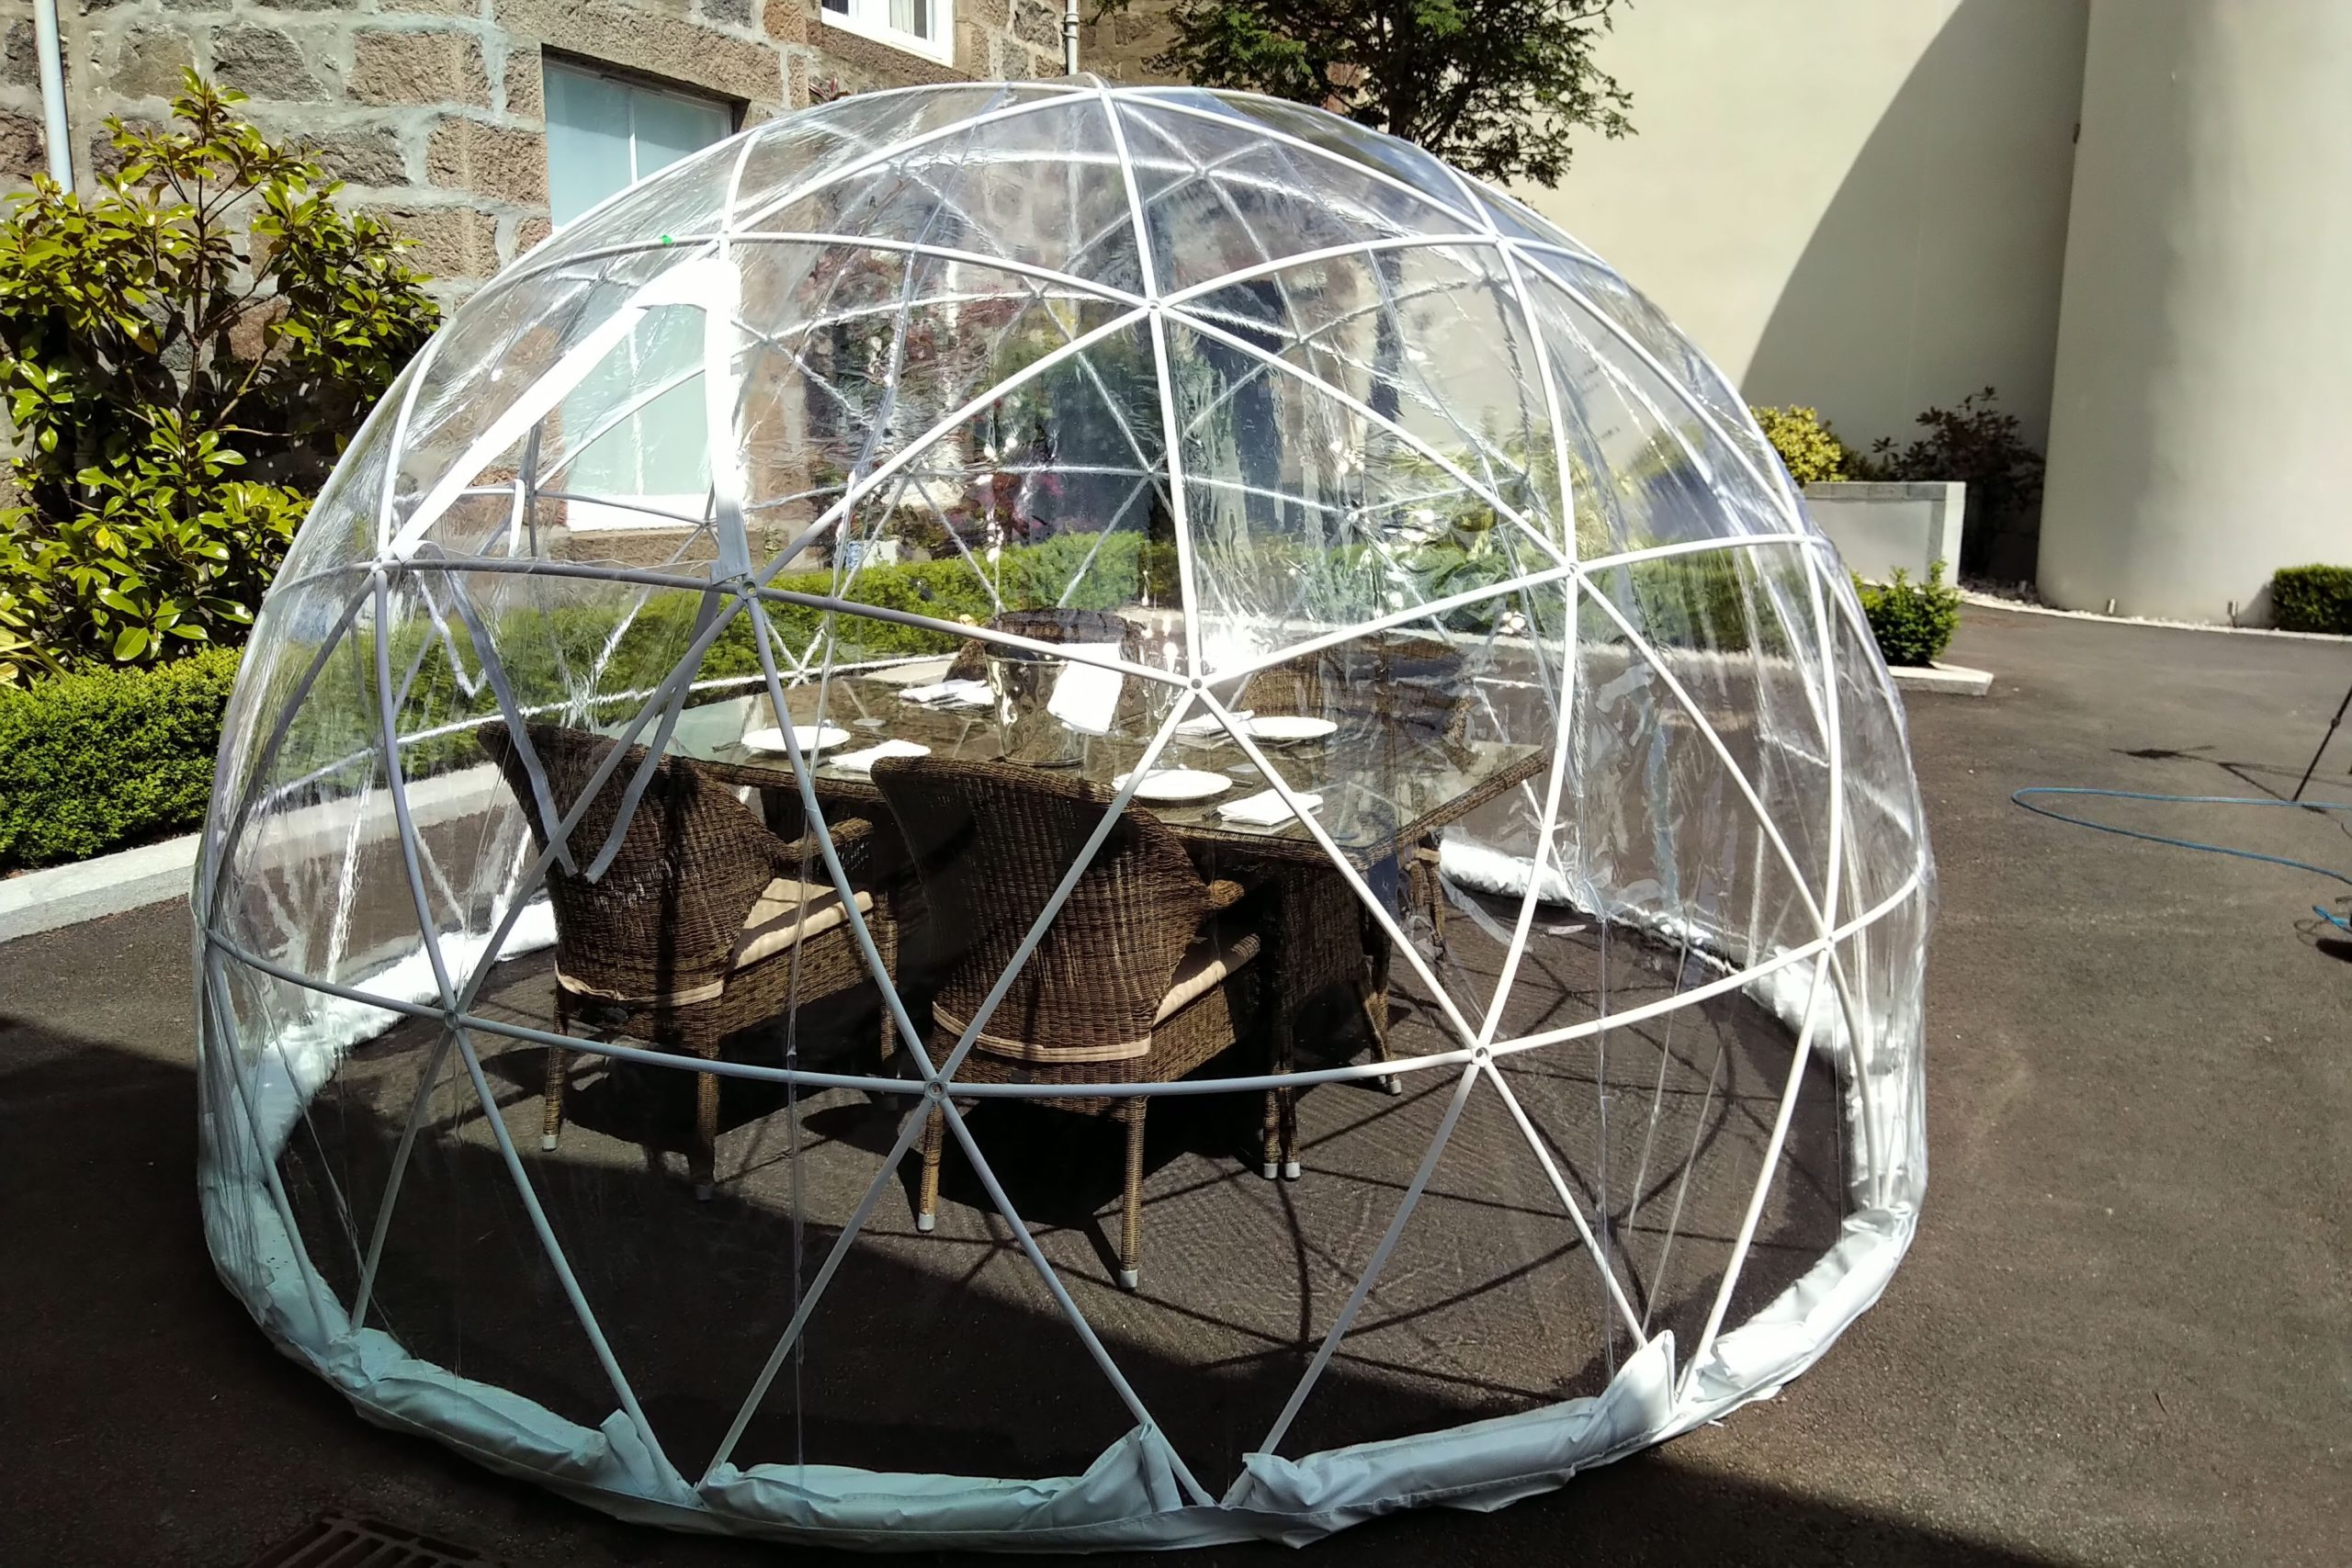 One of the igloos installed by the Chester Hotel.